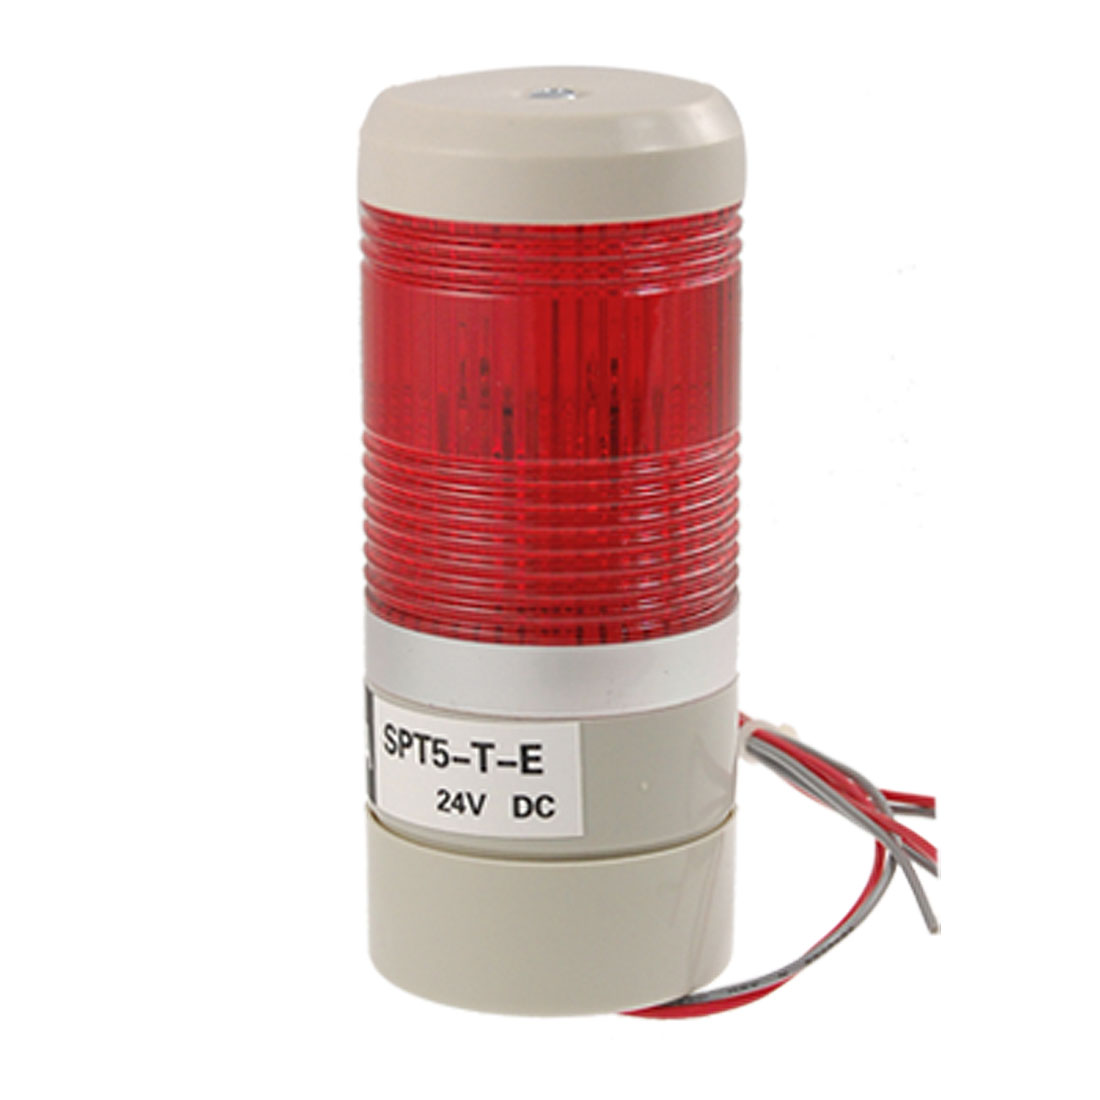 DC 24V Red LED Light Industrial Signal Tower Safety Alarm Lamp w Bracket